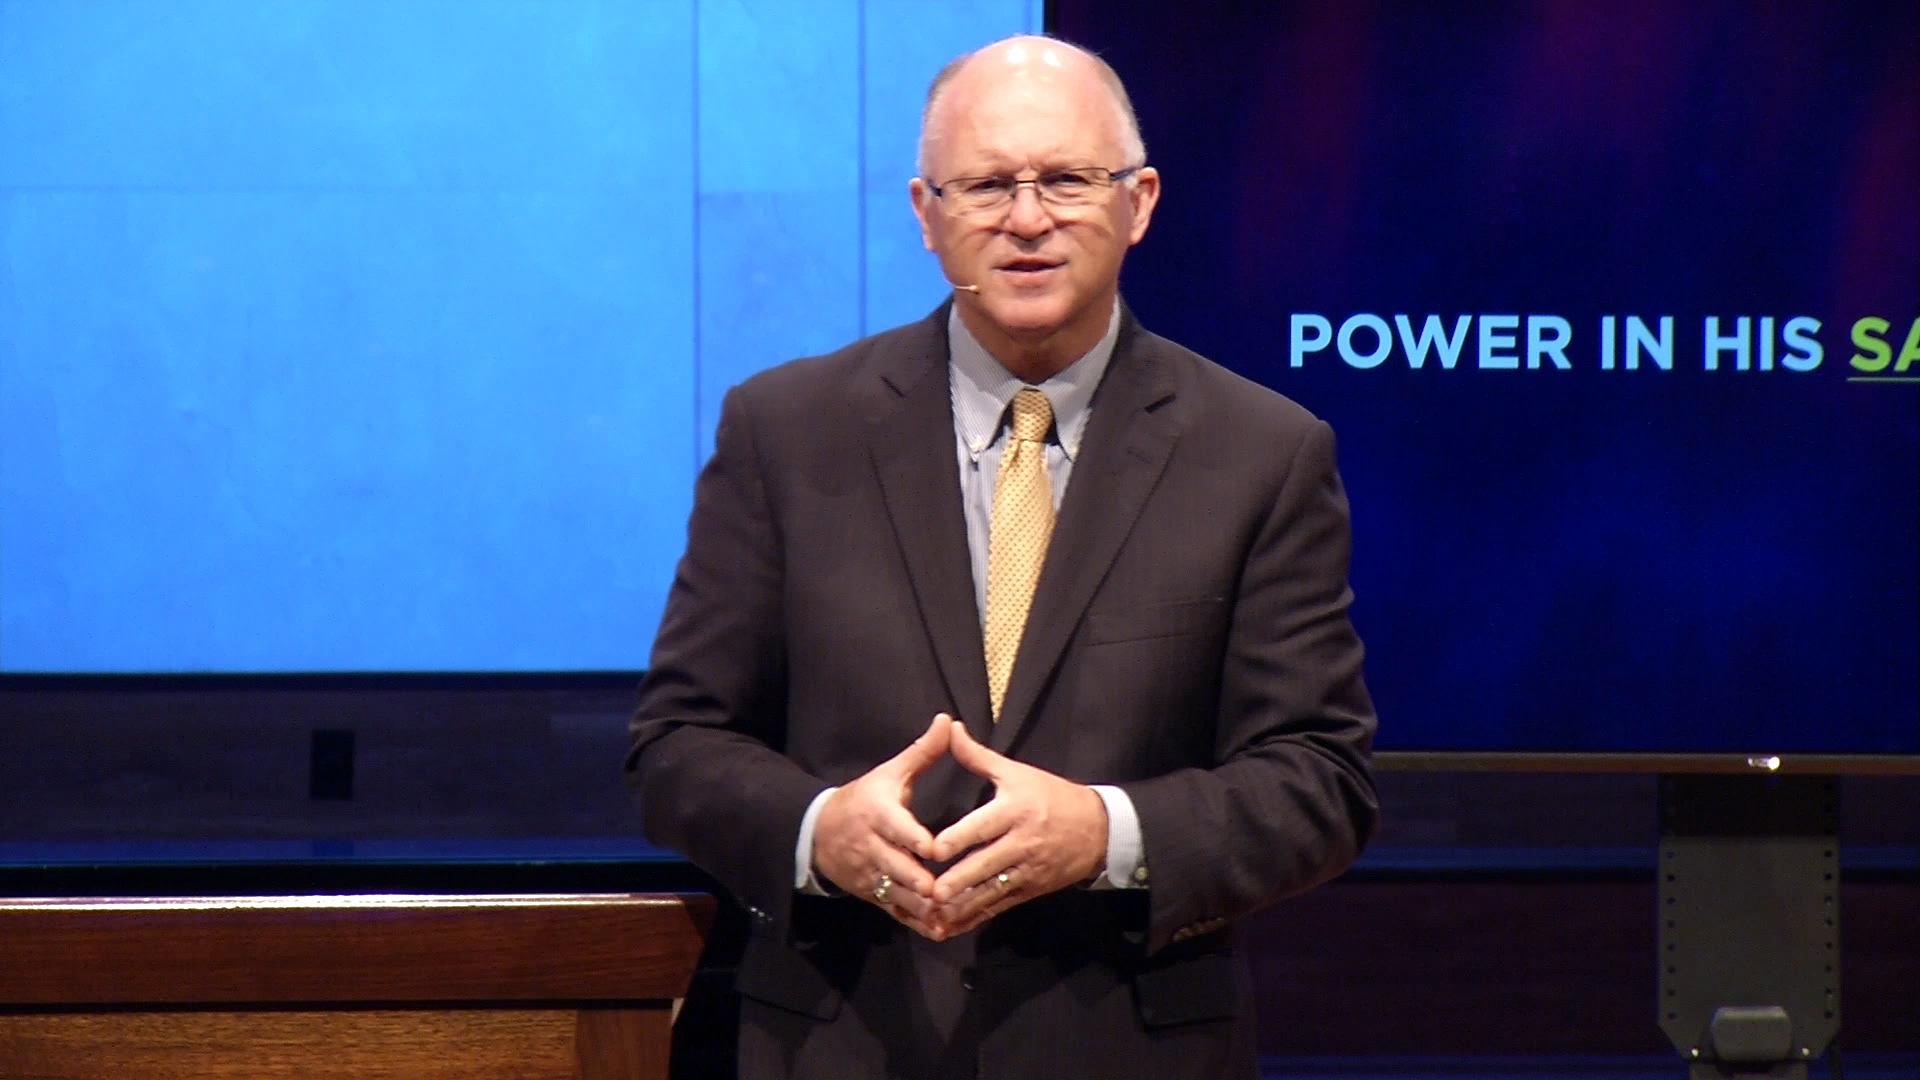 Pastor Paul Chappell: Christ's Power at the Cross